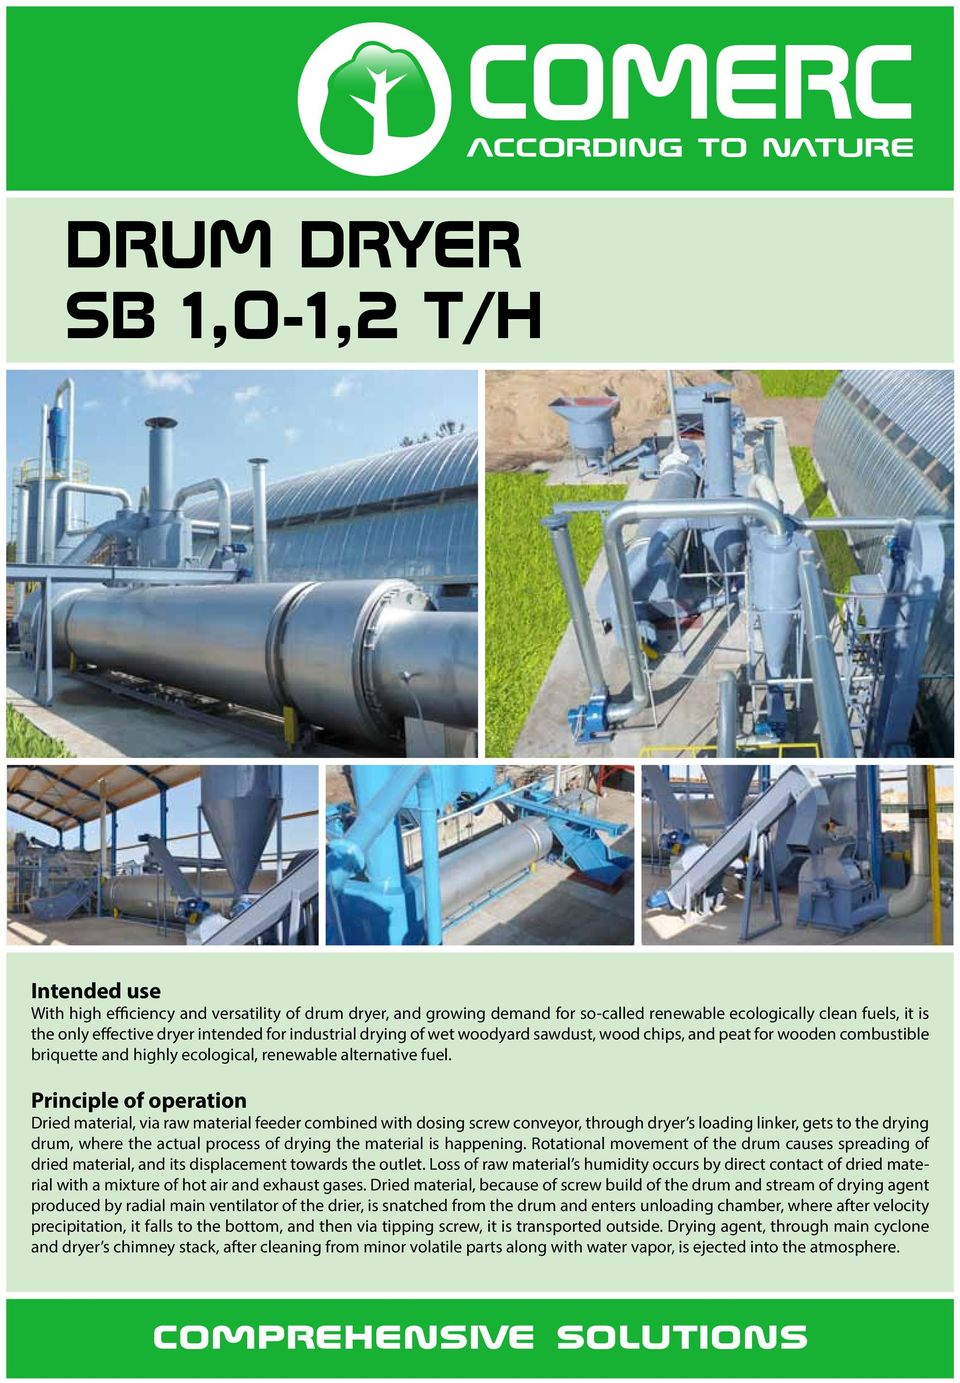 Principle of operation Dried material, via raw material feeder combined with dosing screw conveyor, through dryer s loading linker, gets to the drying drum, where the actual process of drying the